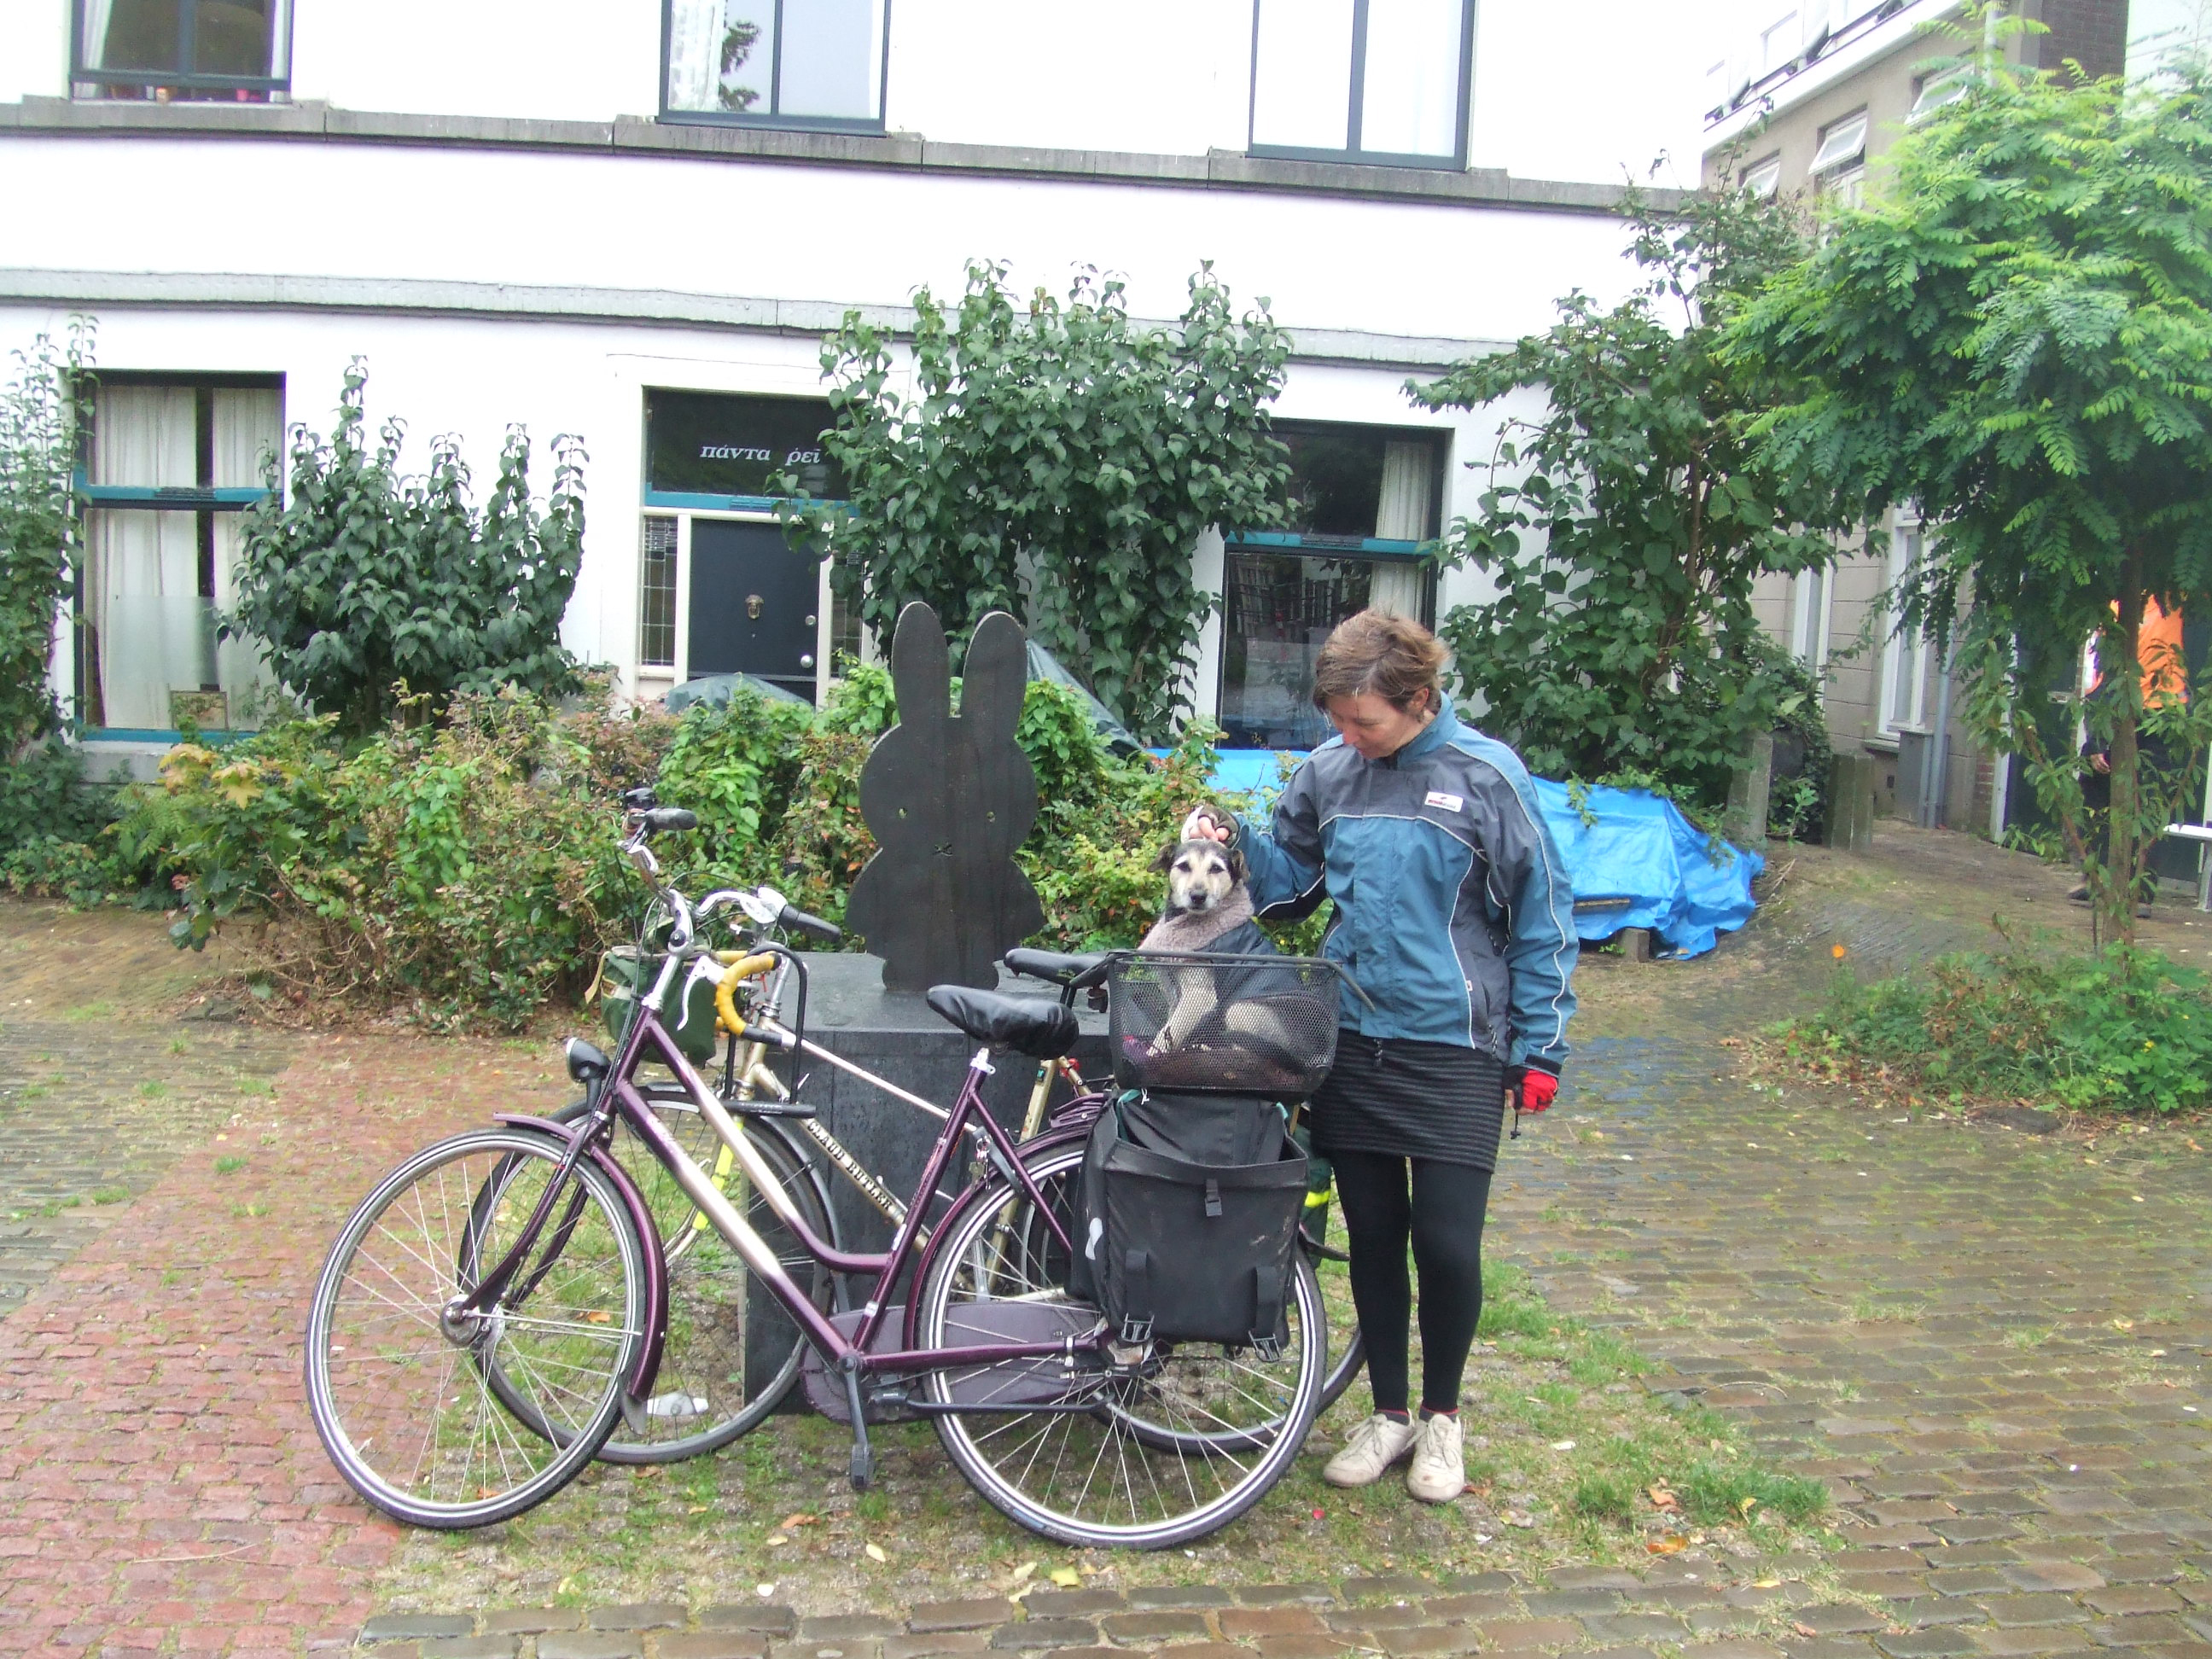 Sara and her bike on their travels!